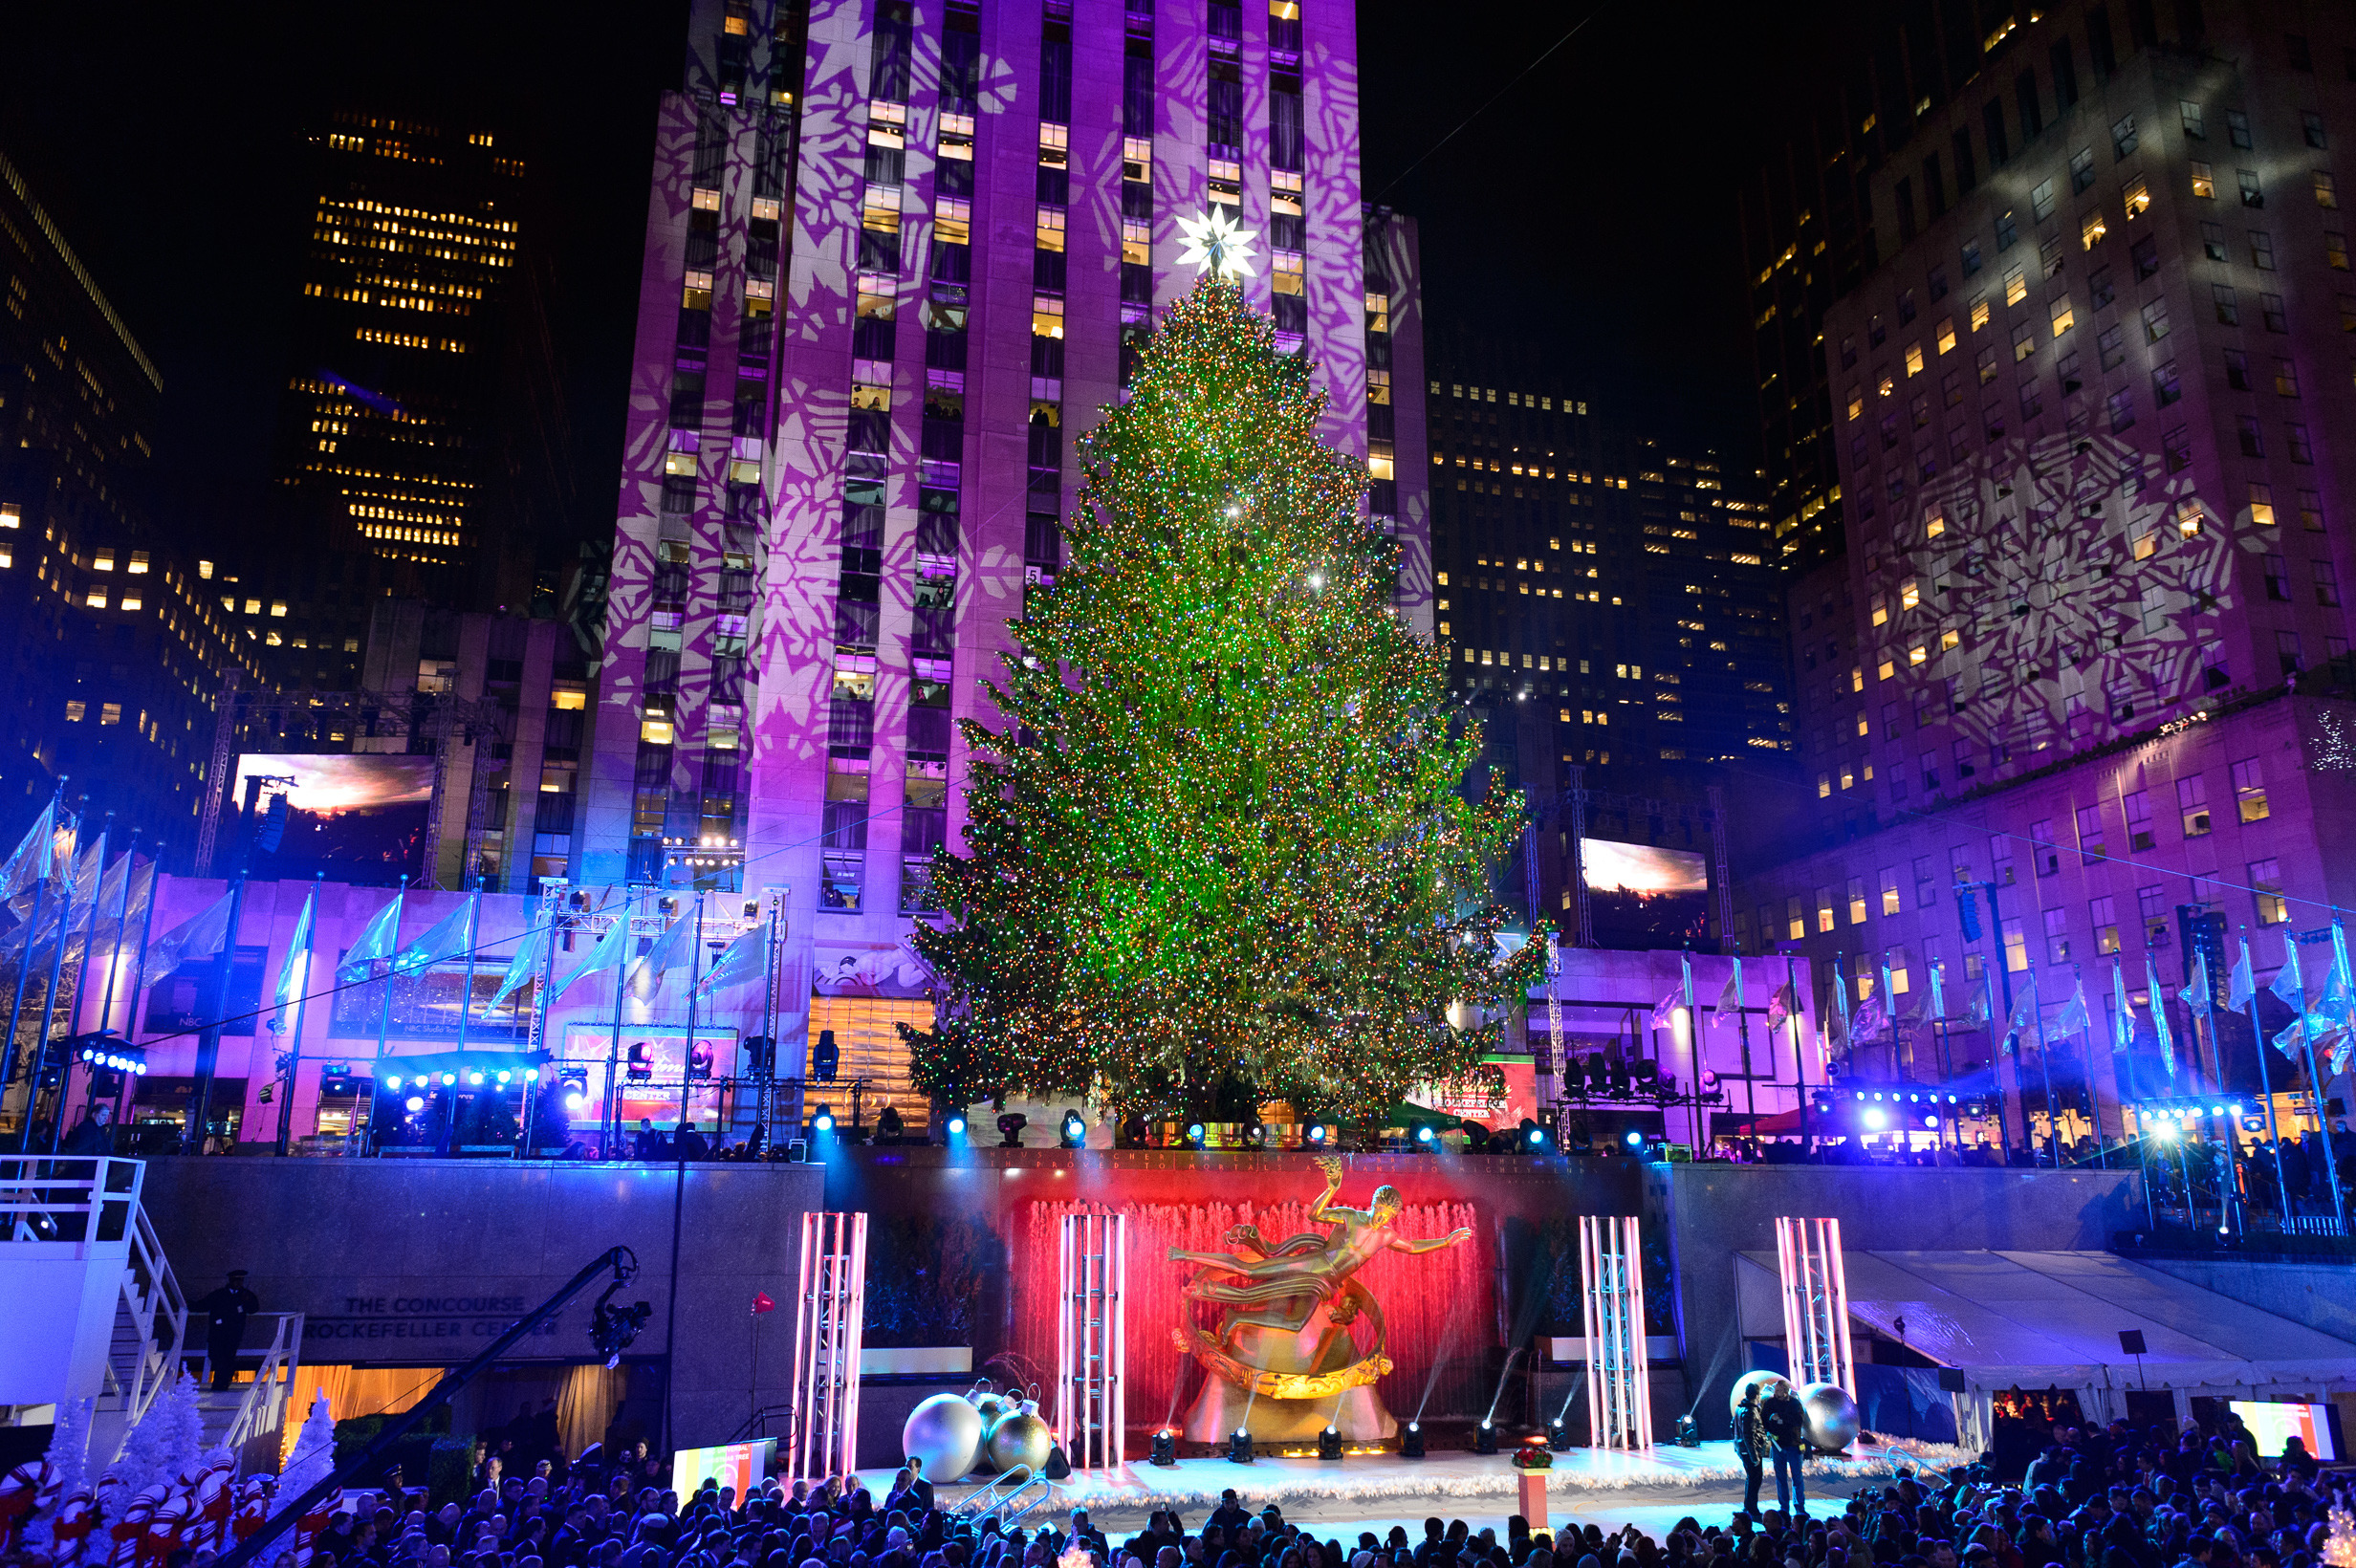 Rockefeller Center Christmas Tree 2013